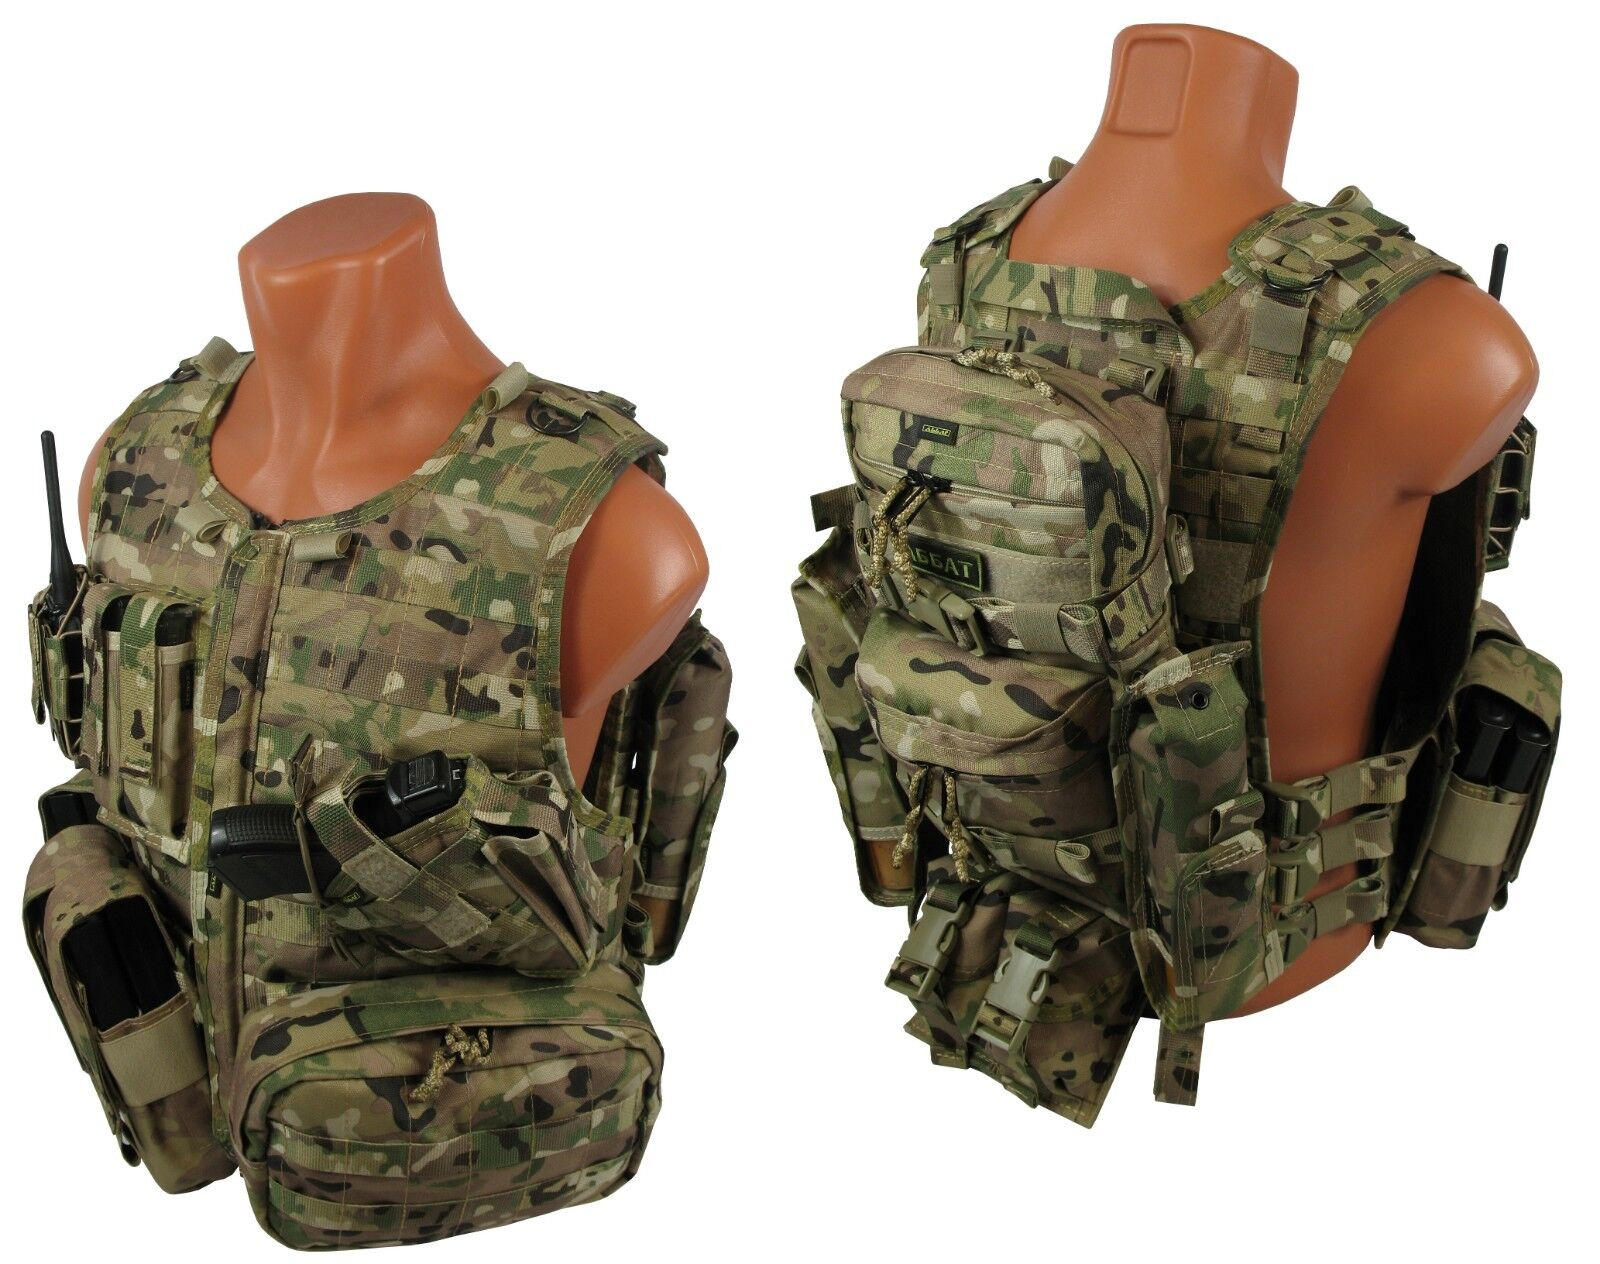 Molle paintball milsim vest Airsoft Modular chest  rig kit №56 multicam  free delivery and returns